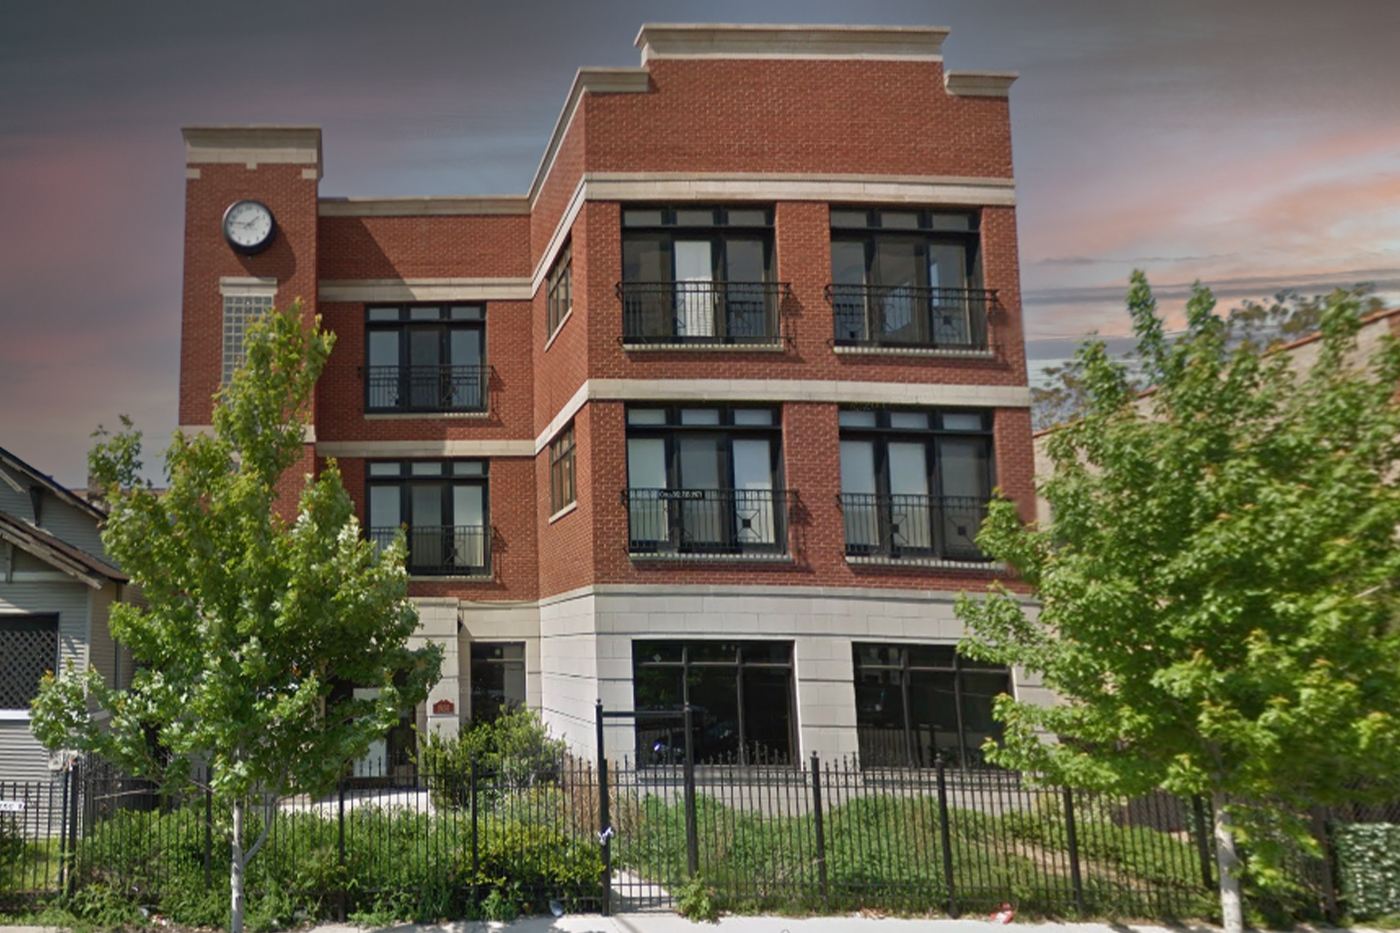 Owner/Occupant buys 1928 W. Fulton St